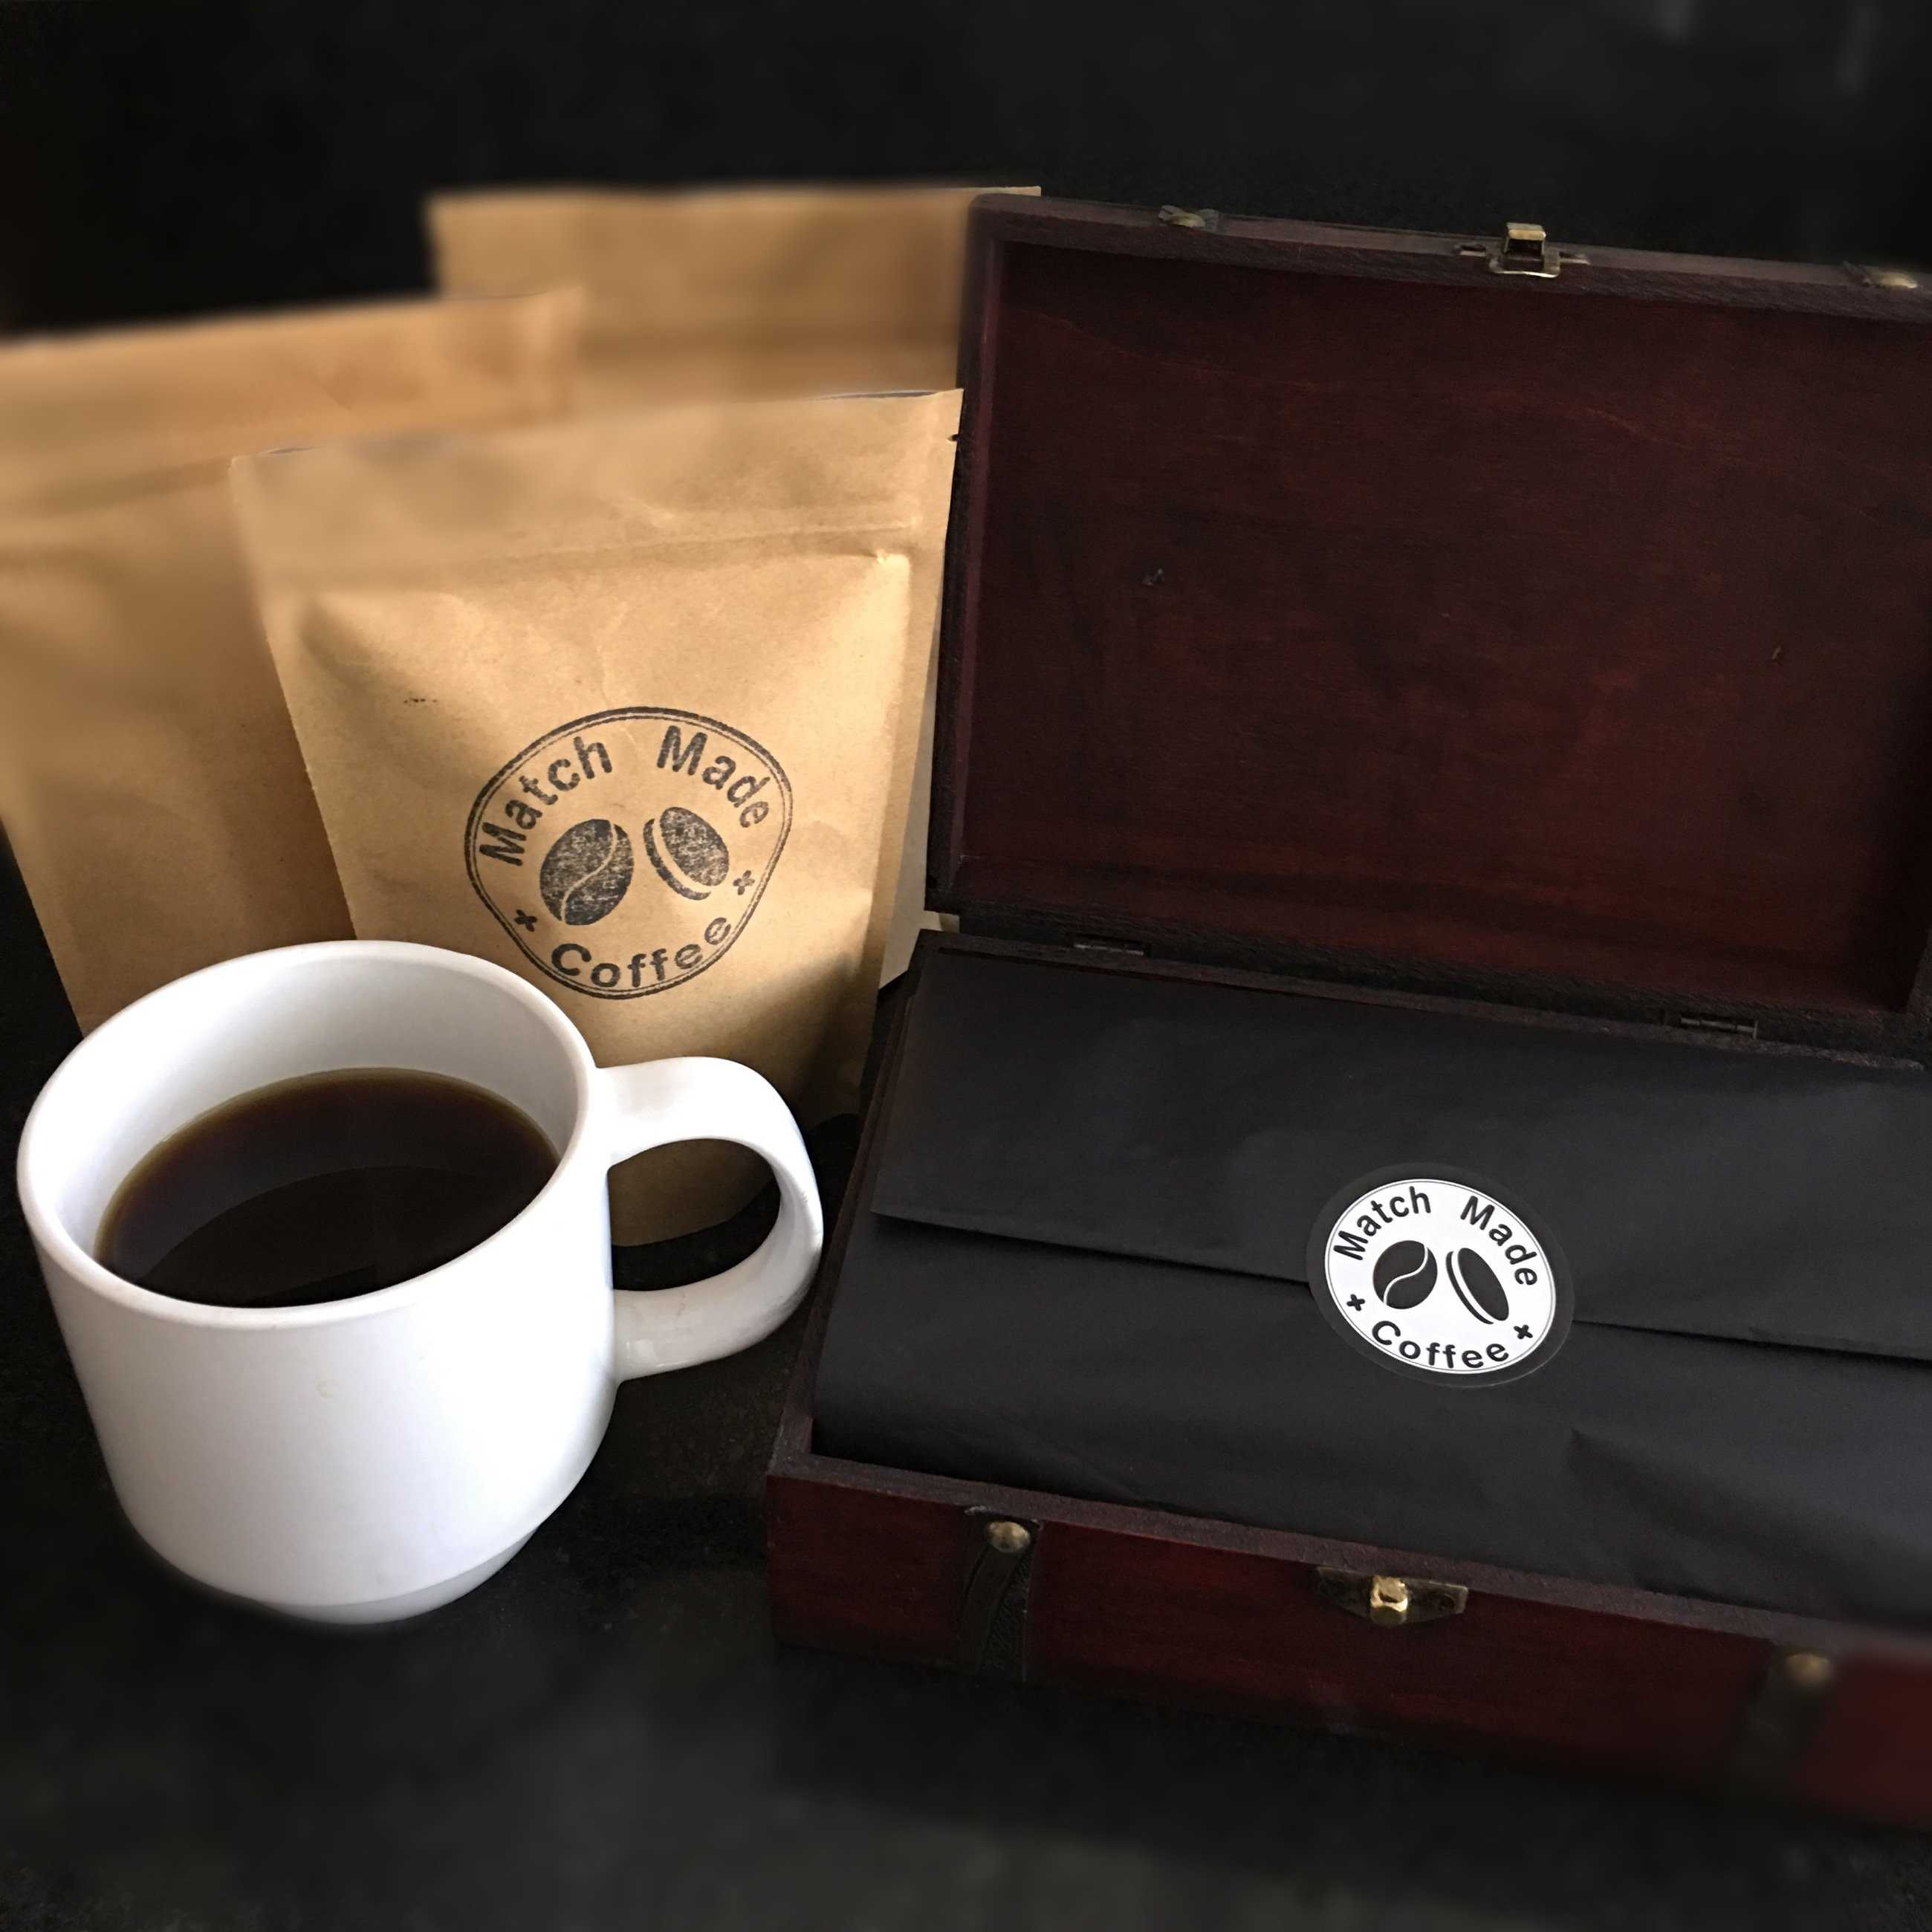 Match Made Coffee Black Friday 2017 Deal: Get 10% off your first box!